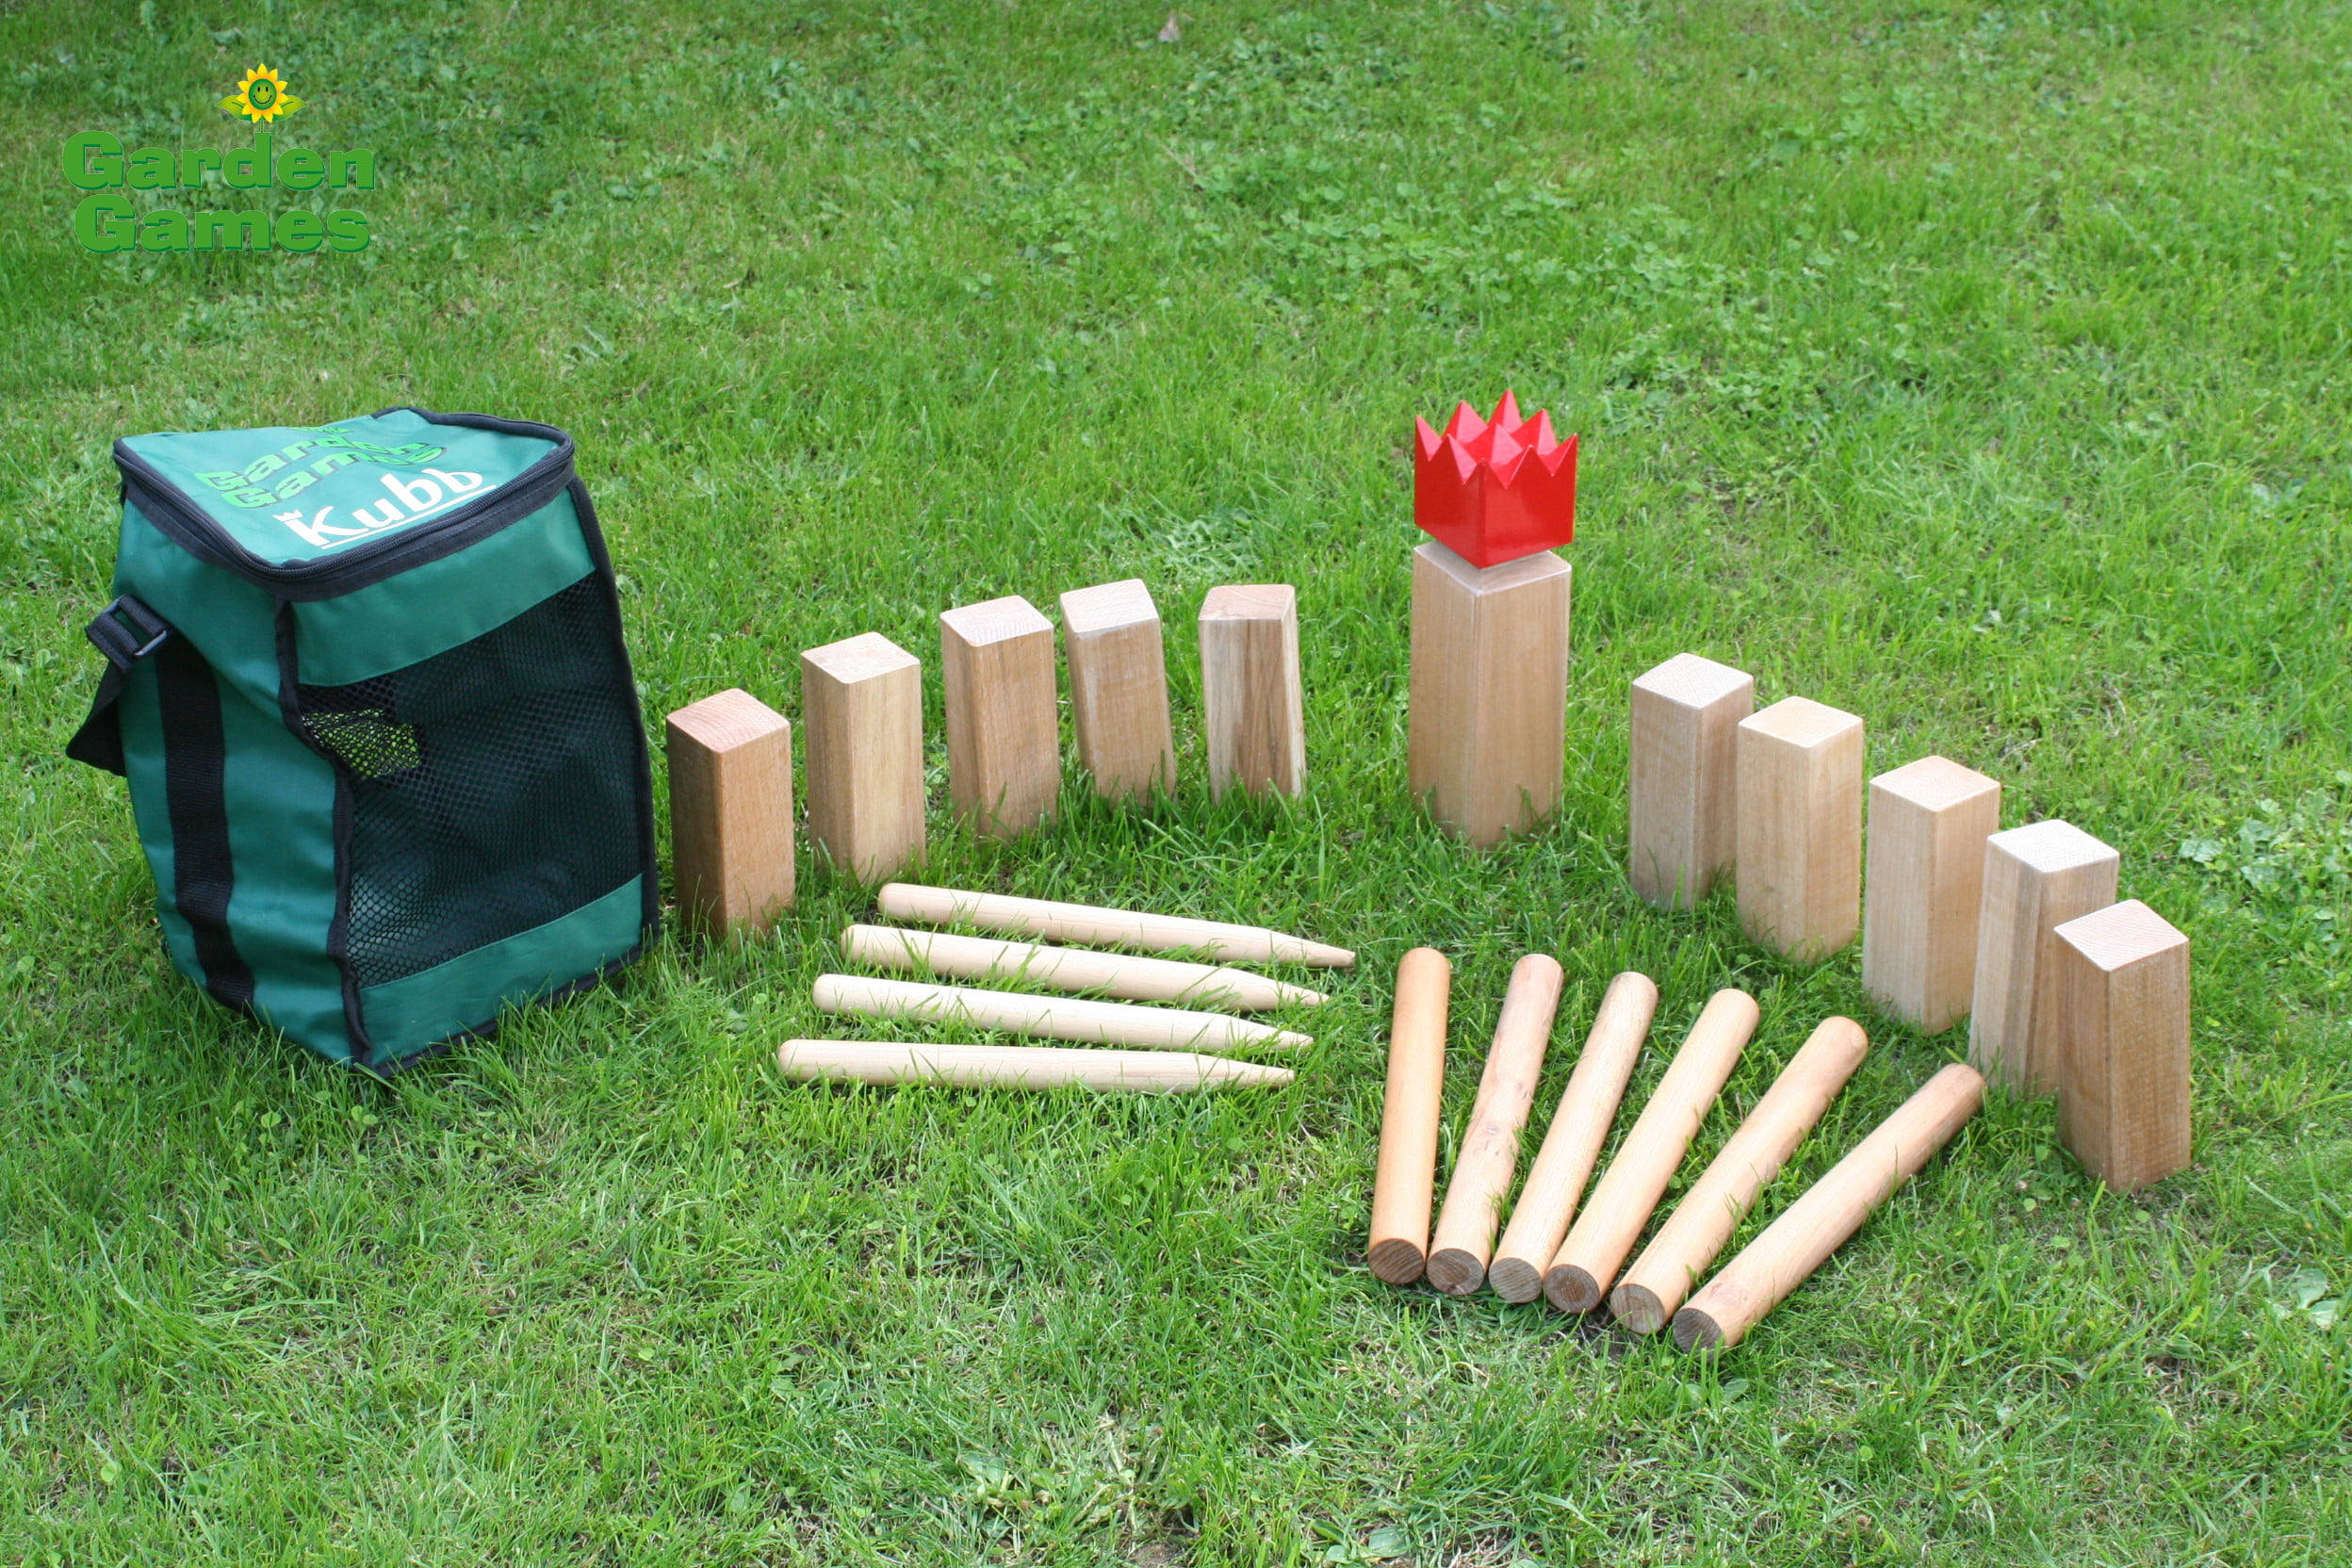 Adventure Zone Toys Garden Games Kubb